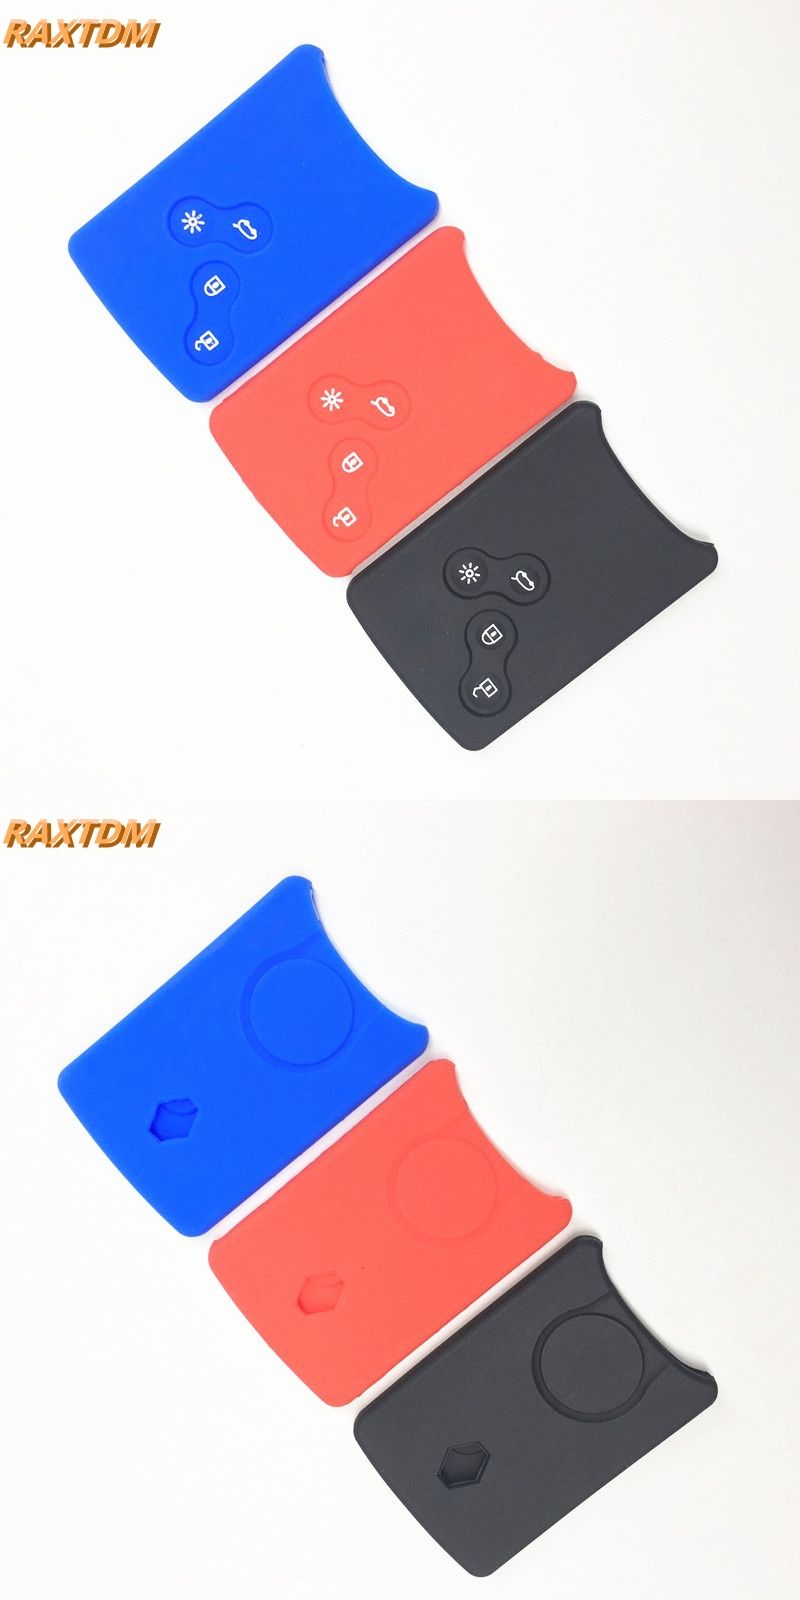 Silicone Rubber Car Key Cover Case Protector Sticker Holder For Scooter Vip Keychain Renault Clio Logan Megane 2 3